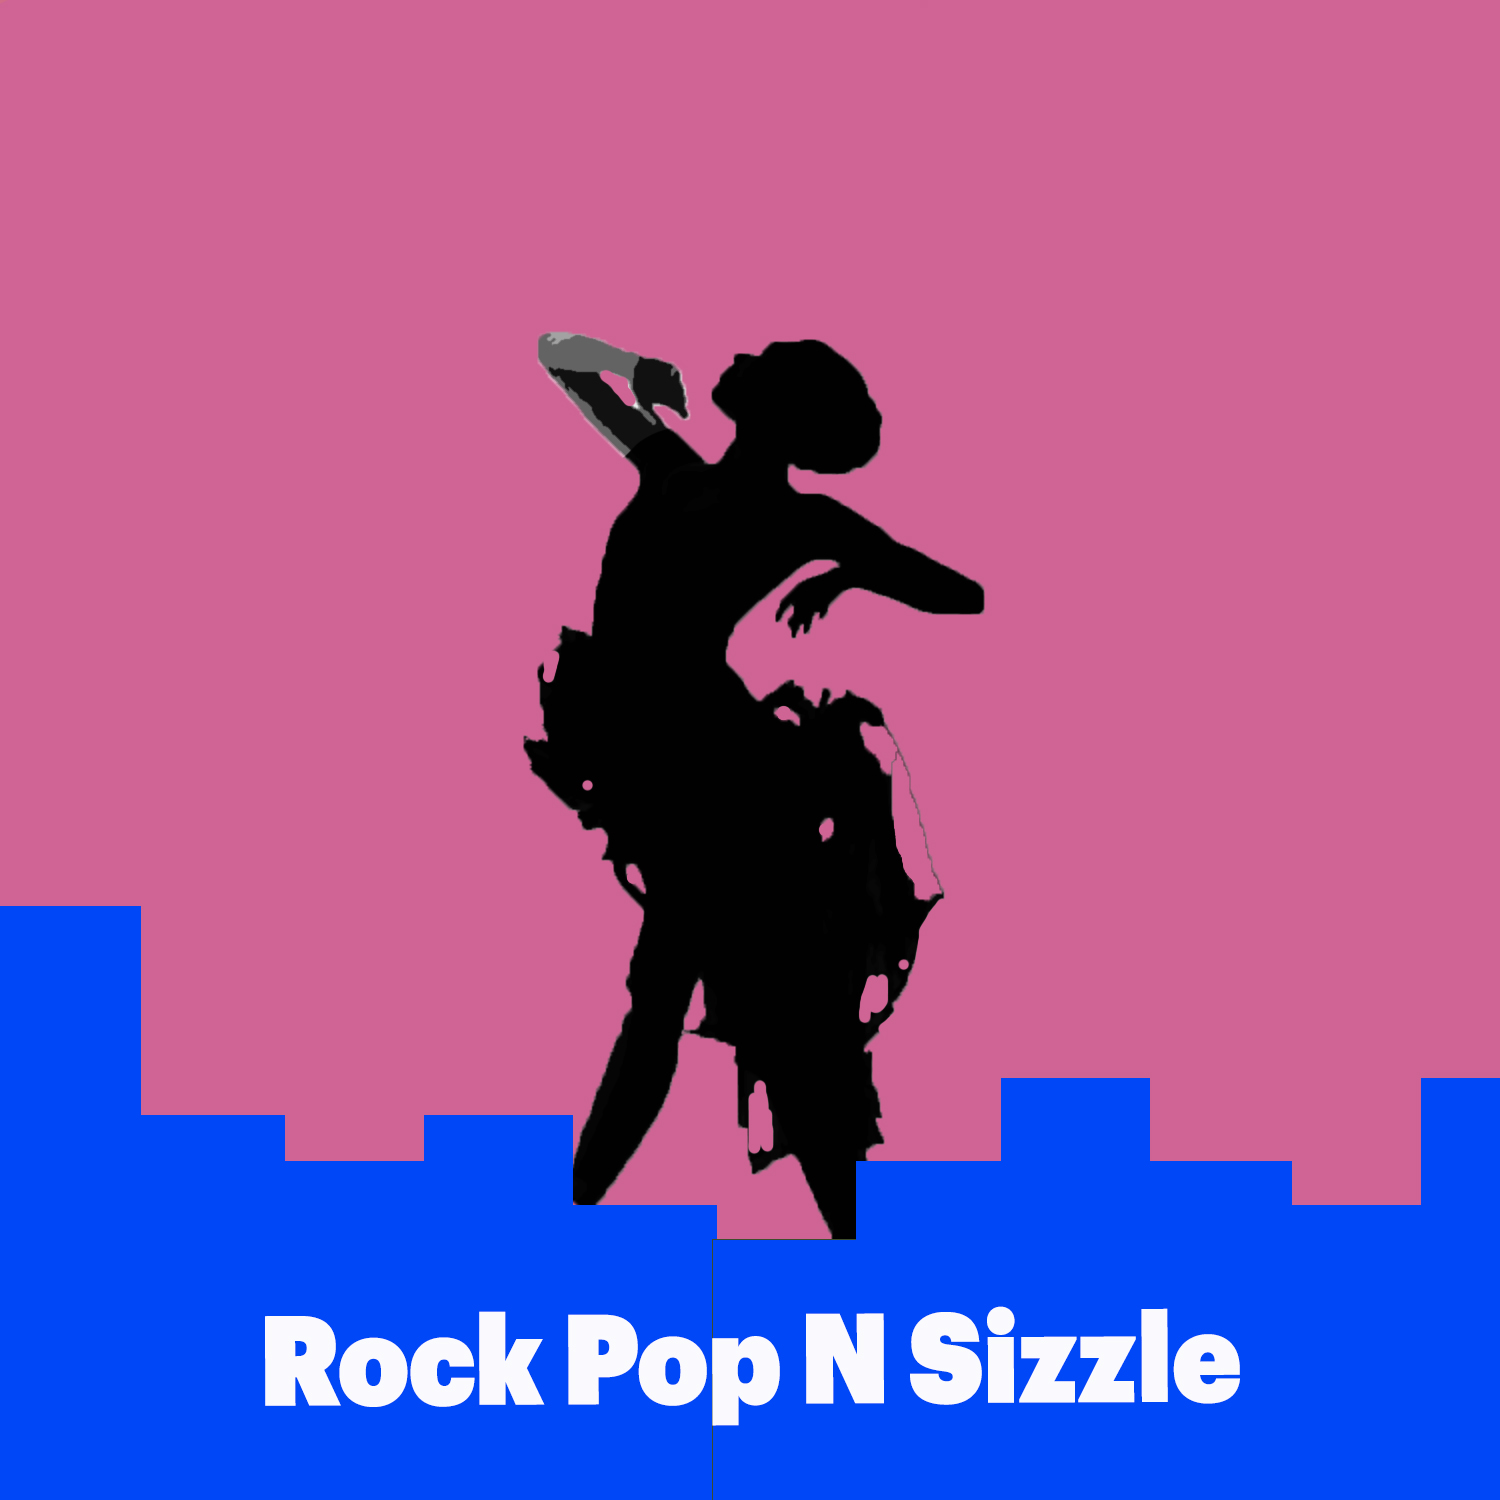 Rock Pop and Sizzle,Songdew